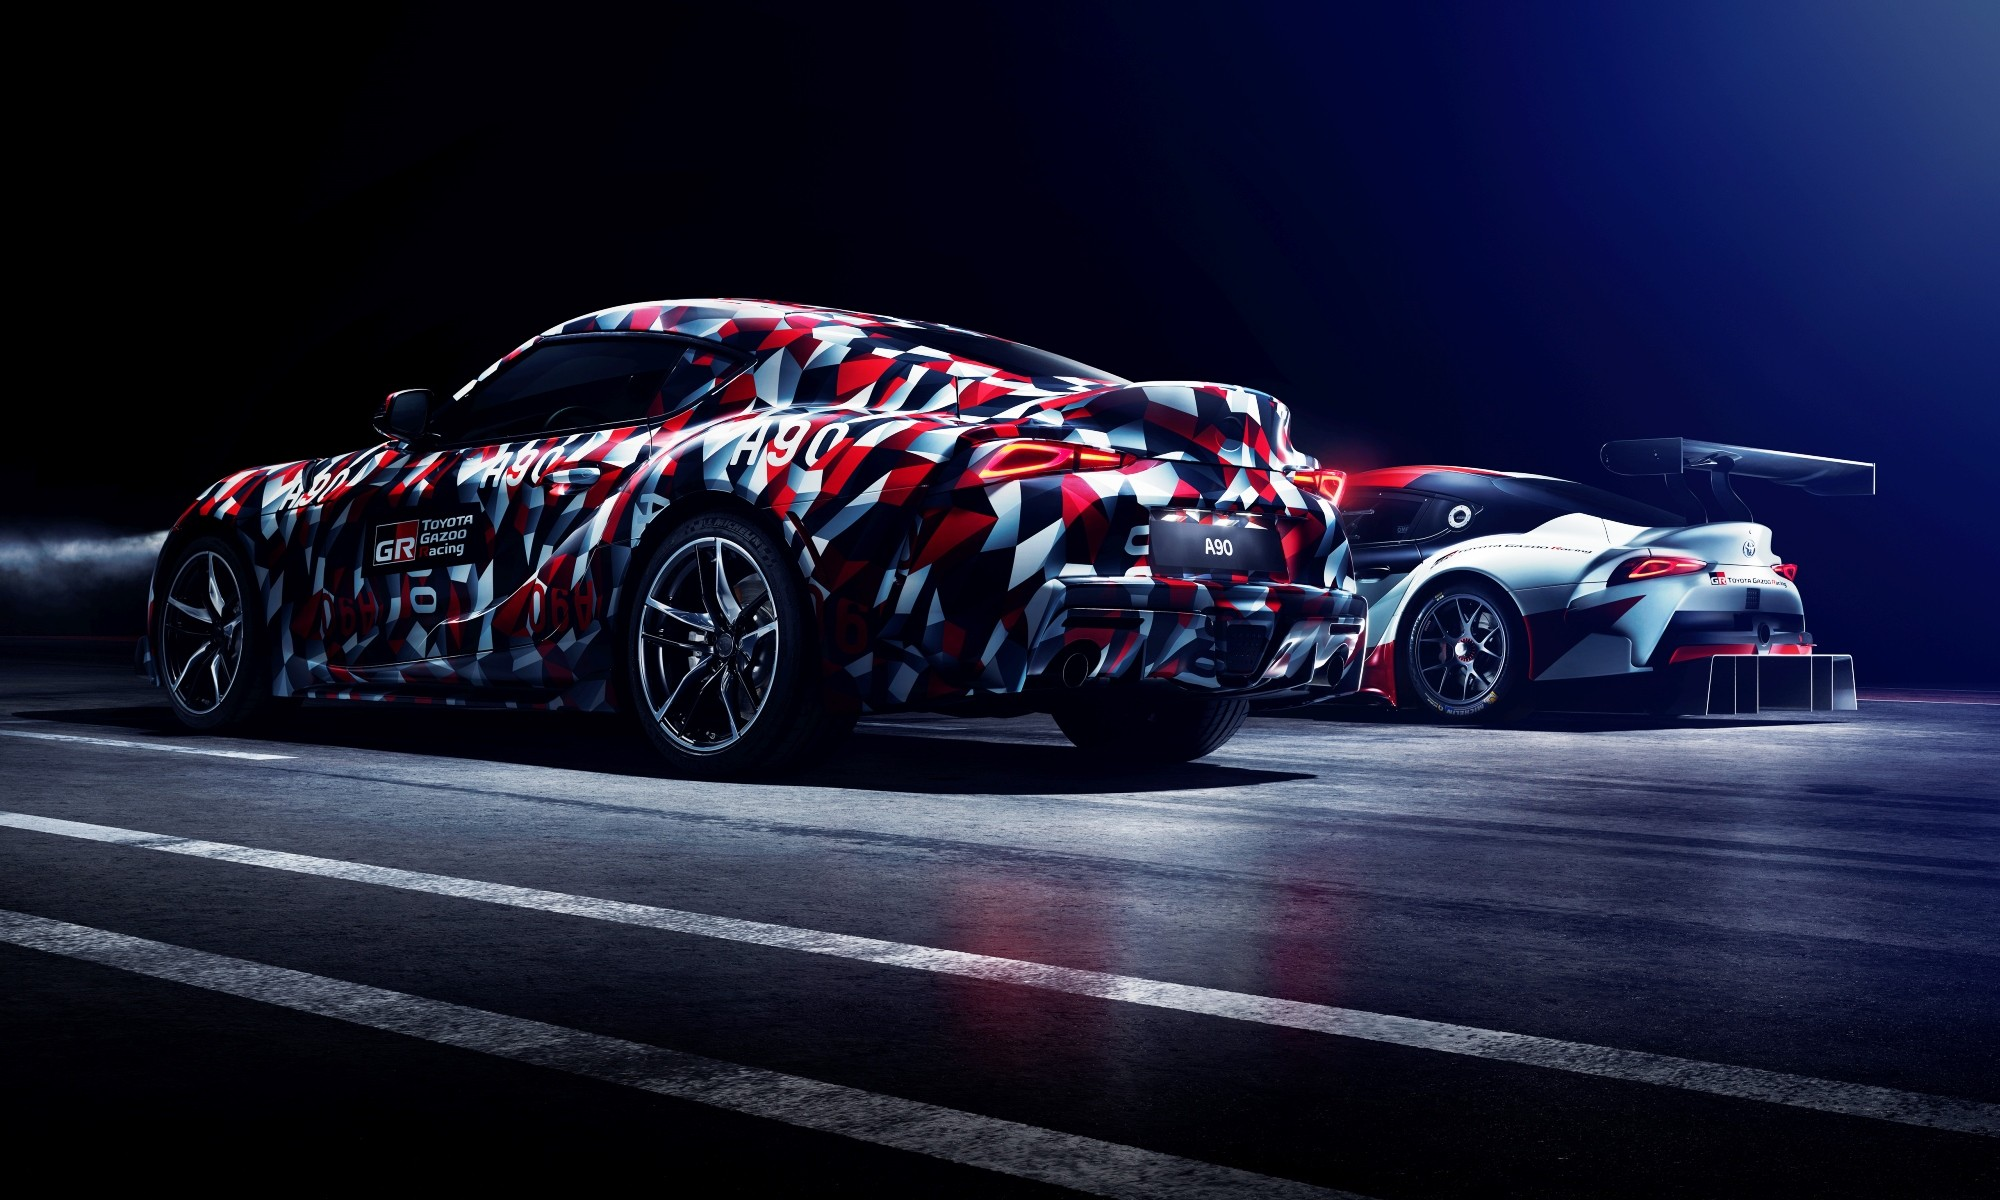 Toyota Supra alongside the Gazoo Racing Concept car